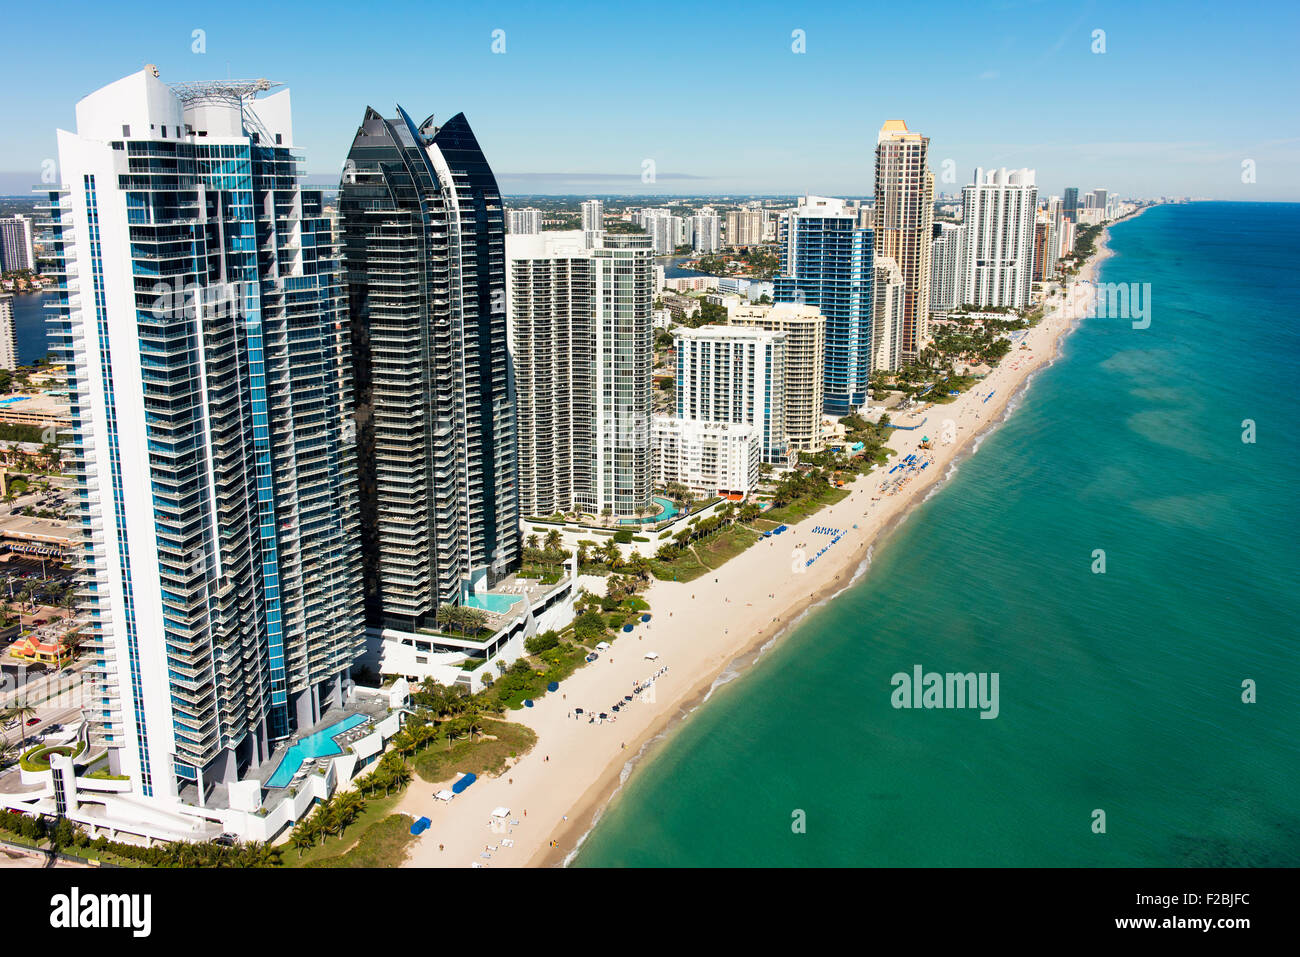 City Of Sunny Isles Beach And High Rise Apartment